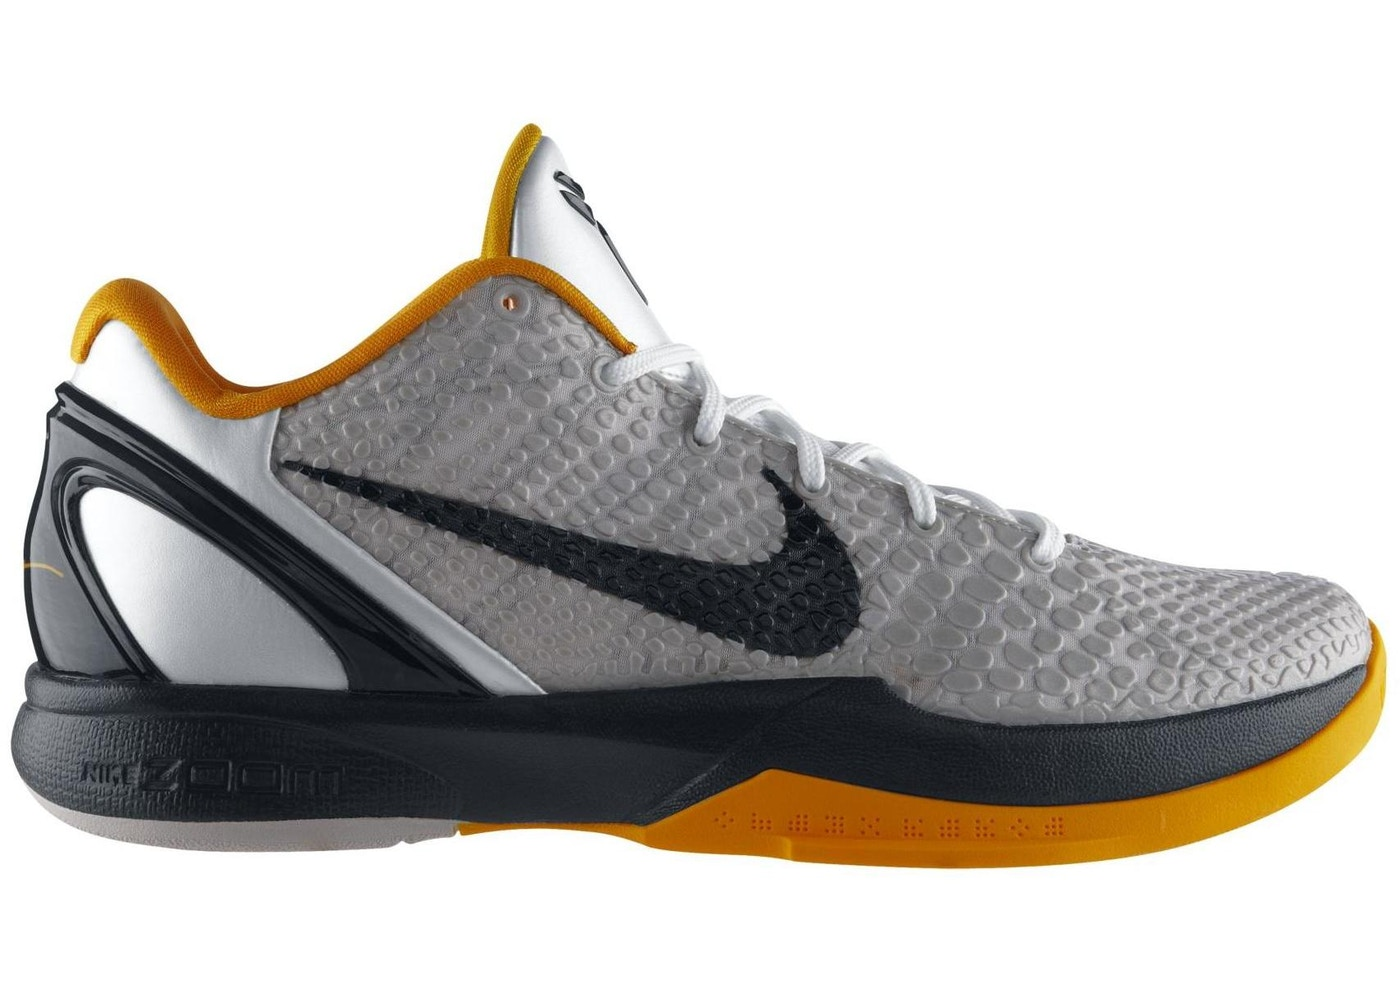 2832436eff6 Buy Nike Kobe 6 Shoes   Deadstock Sneakers